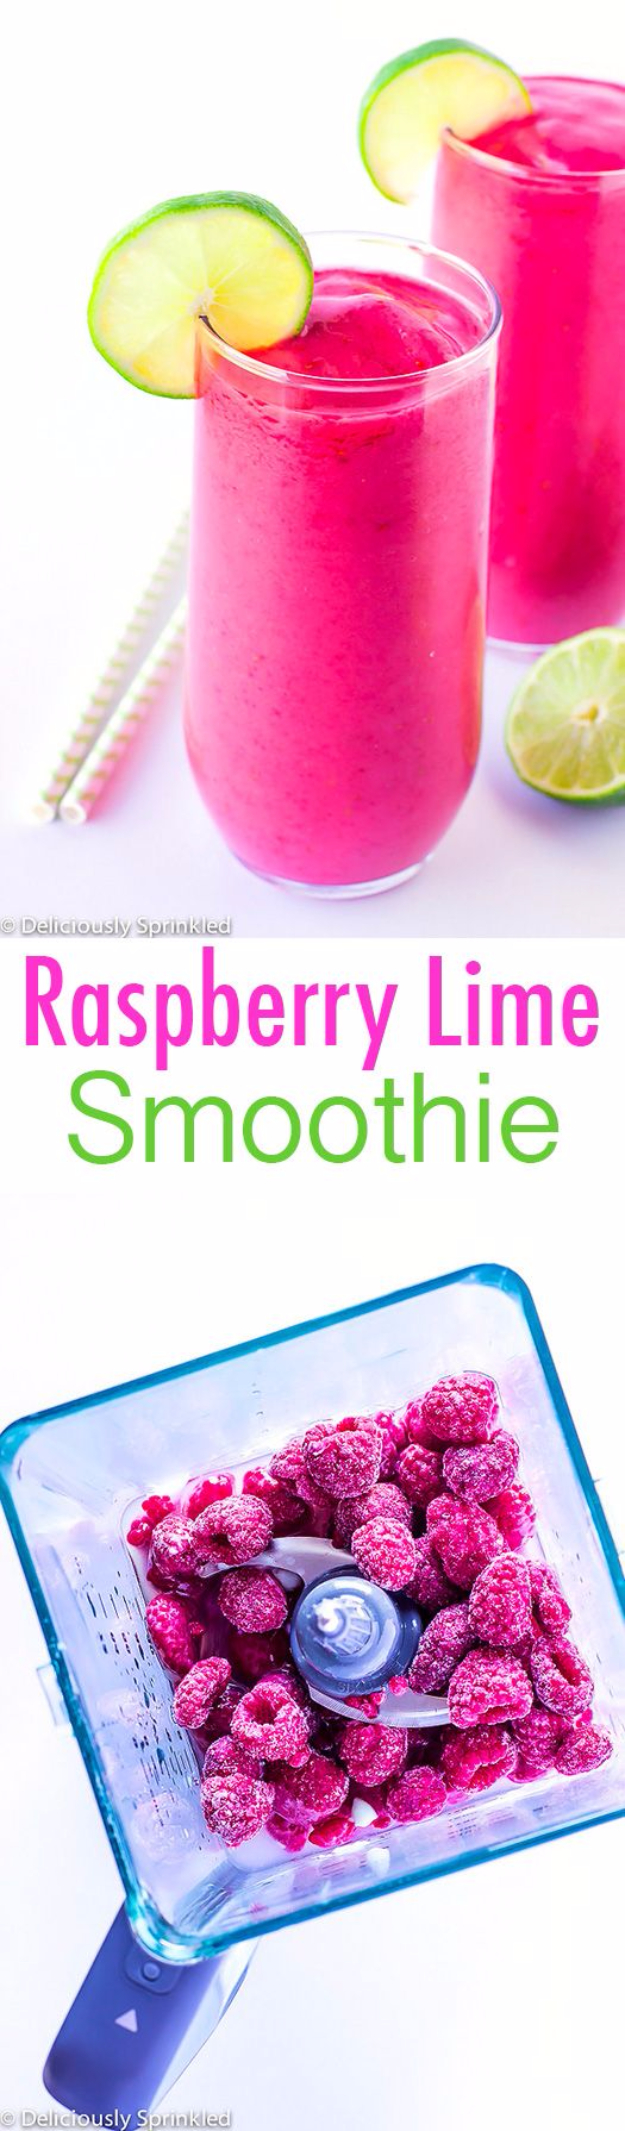 Healthy Smoothie Recipes - Raspberry Lime Smoothie - Easy ideas perfect for breakfast, energy. Low calorie and high protein recipes for weightloss and to lose weight. Simple homemade recipe ideas that kids love. Quick EASY morning recipes before work and school, after workout http://diyjoy.com/healthy-smoothie-recipes